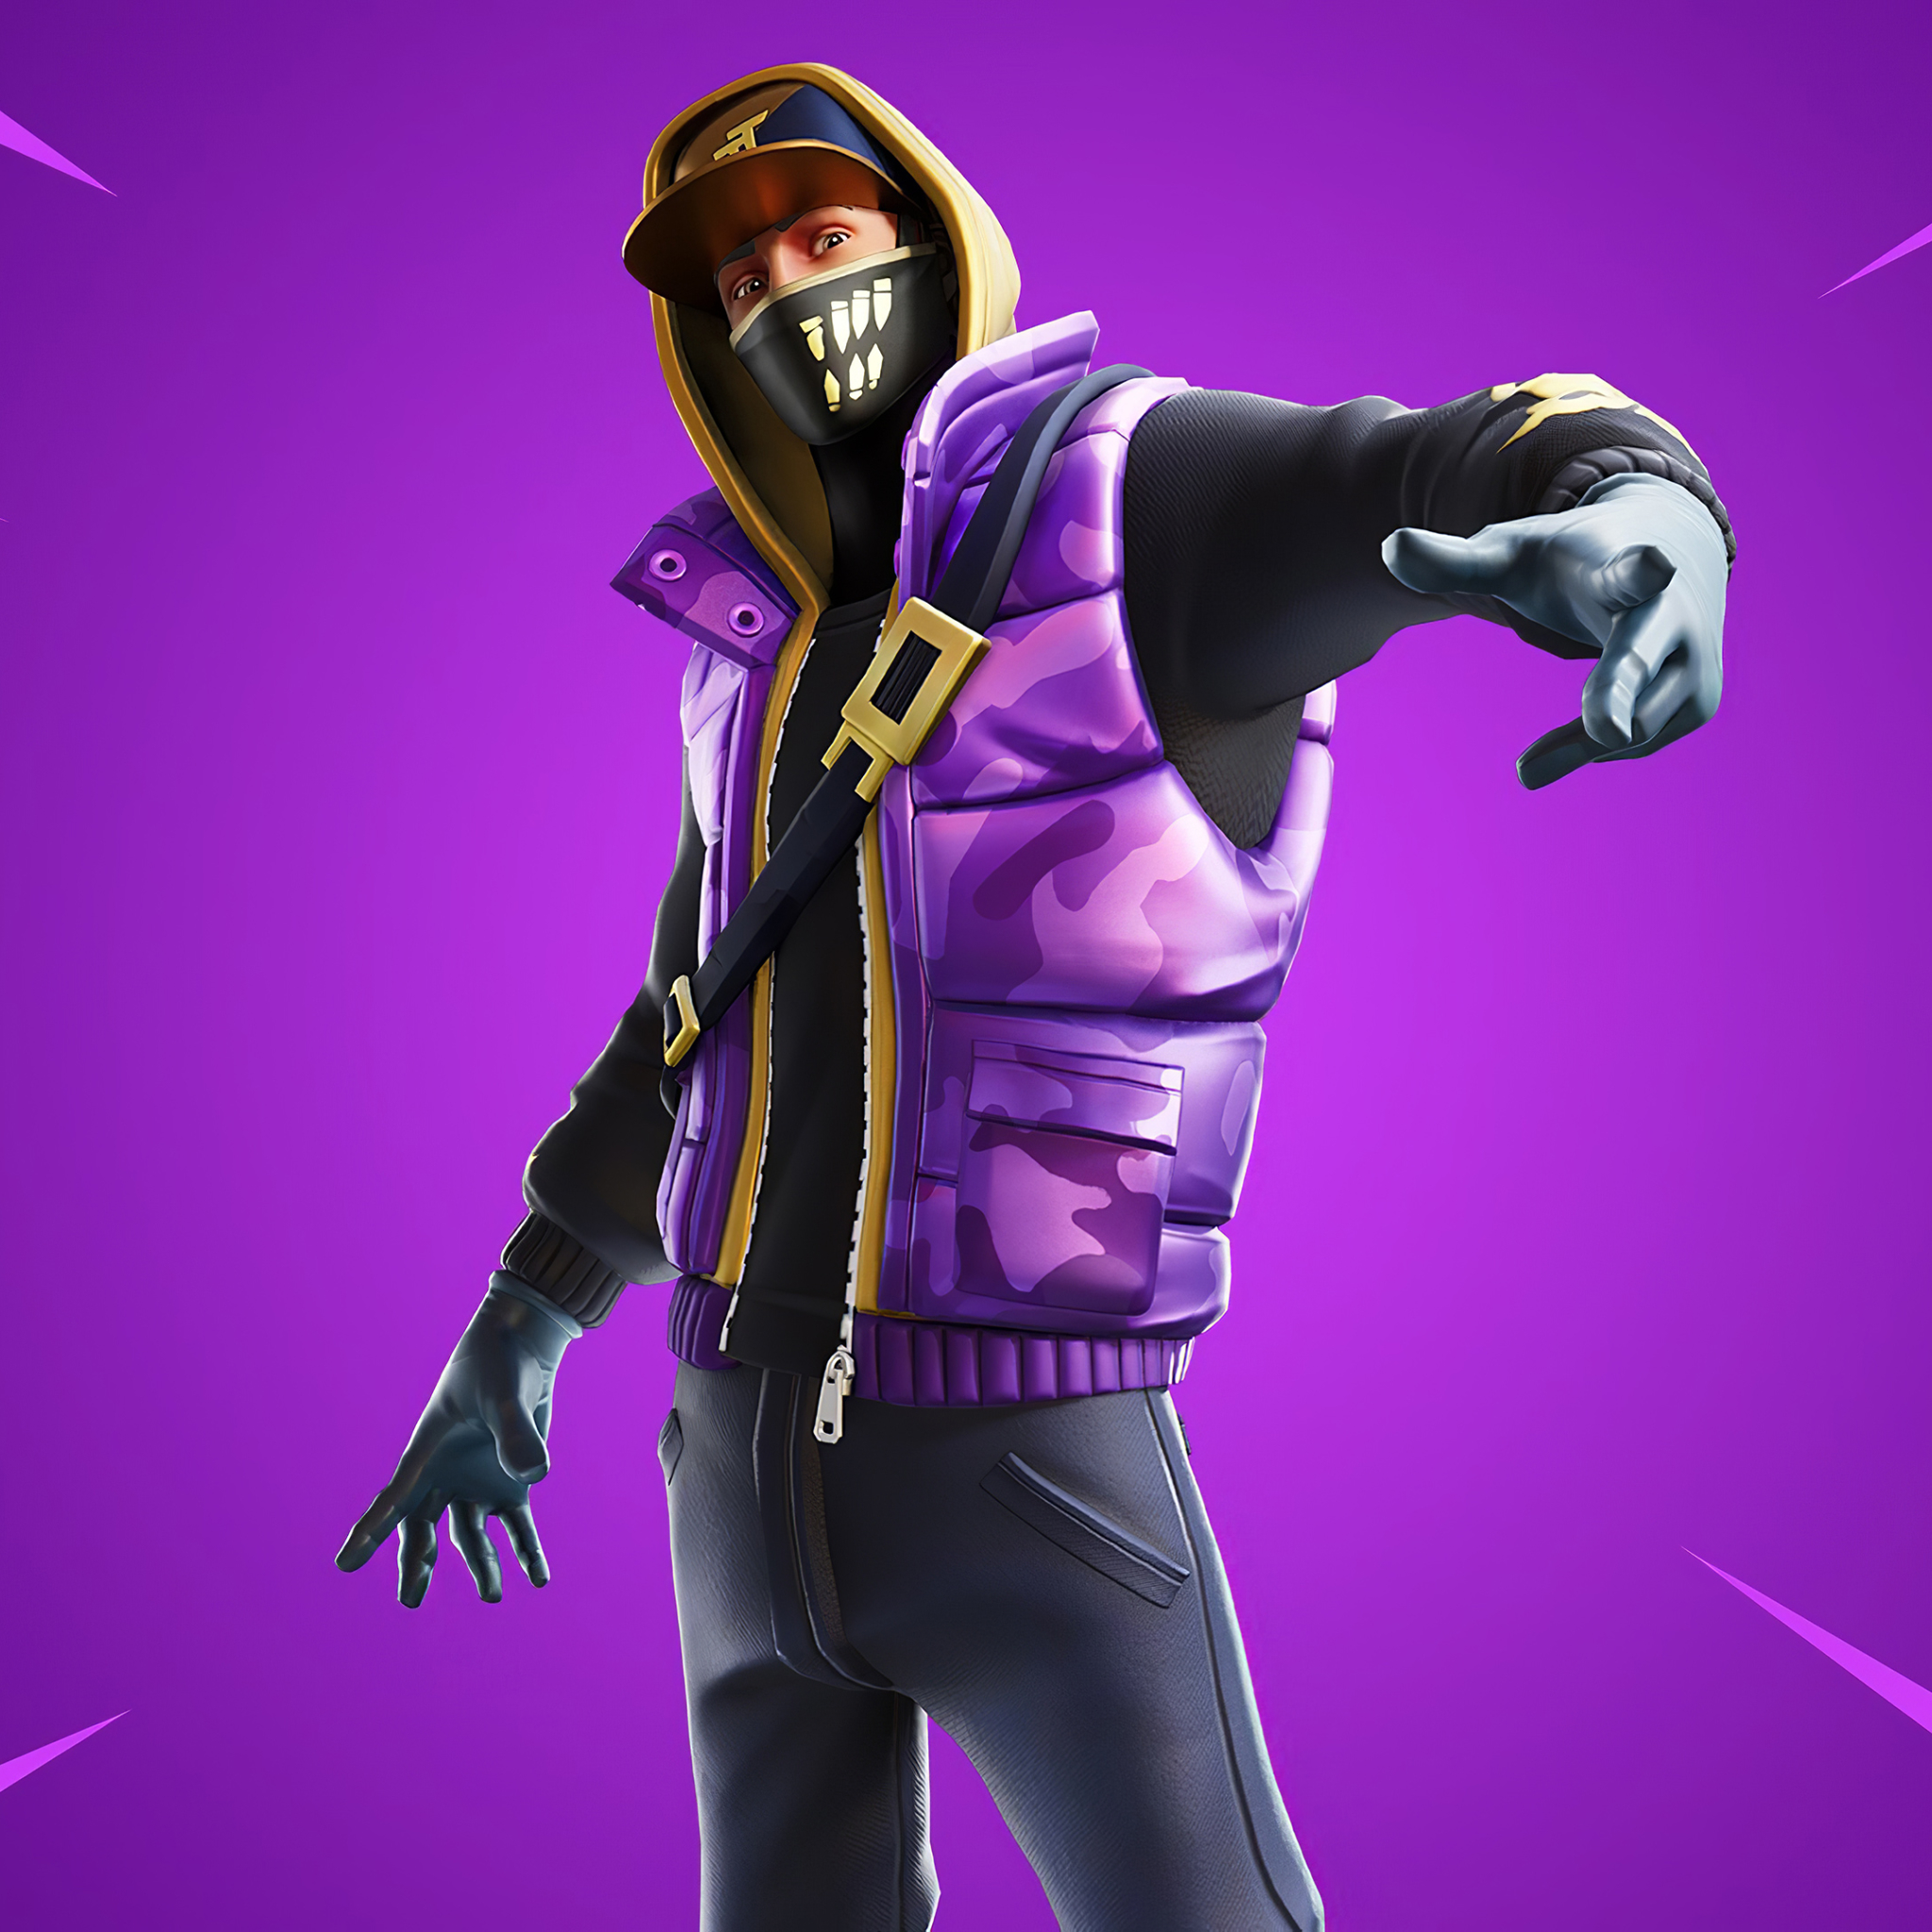 2048x2048 Street Striker 4k Skin From Fortnite Chapter 2 Ipad Air Wallpaper Hd Games 4k Wallpapers Images Photos And Background